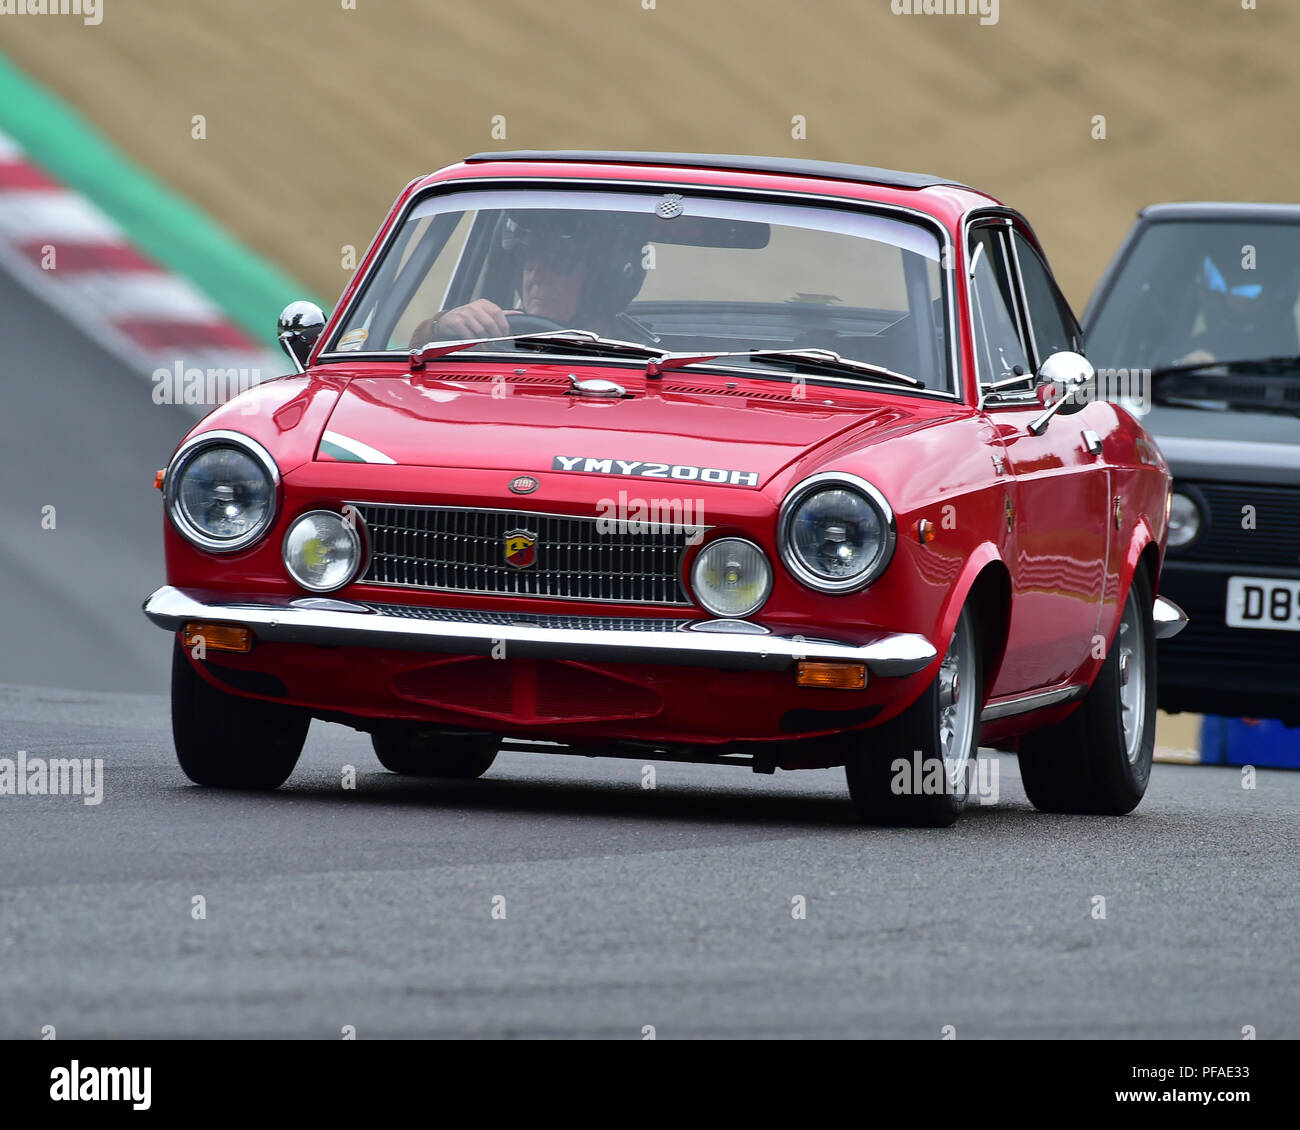 FIAT Abarth OT 1000, Historic Abarth Demonstration, Special Italian Car demo, Festival Italia, Brands Hatch, Kent, England, August 19th, 2018. - Stock Image